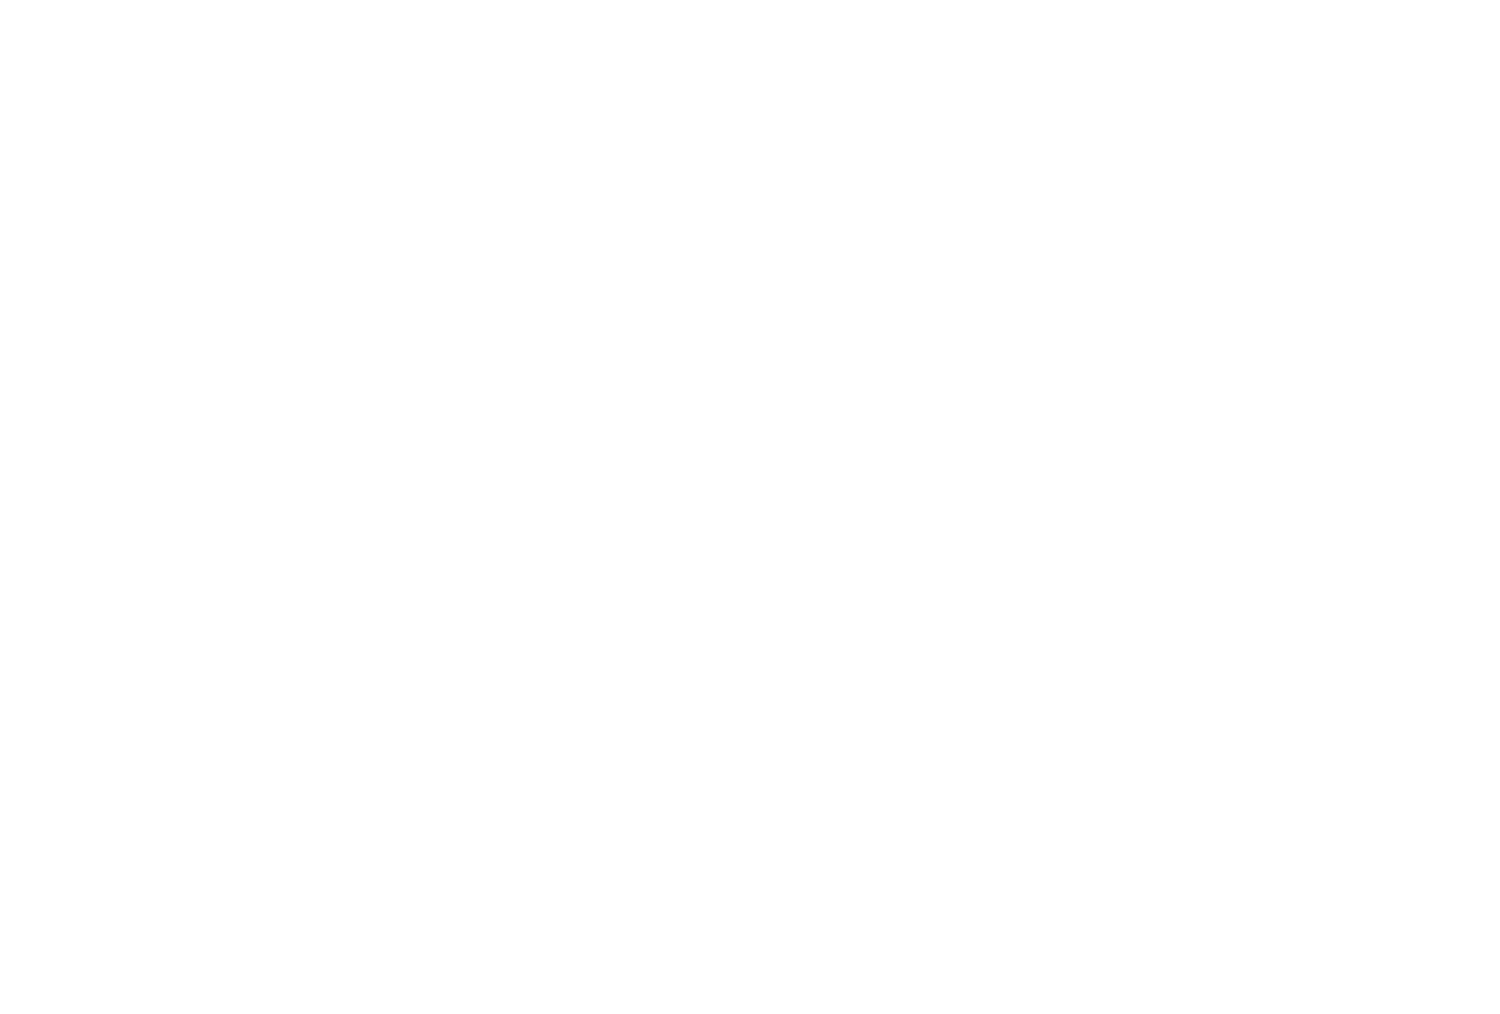 Irish Dance Theatre